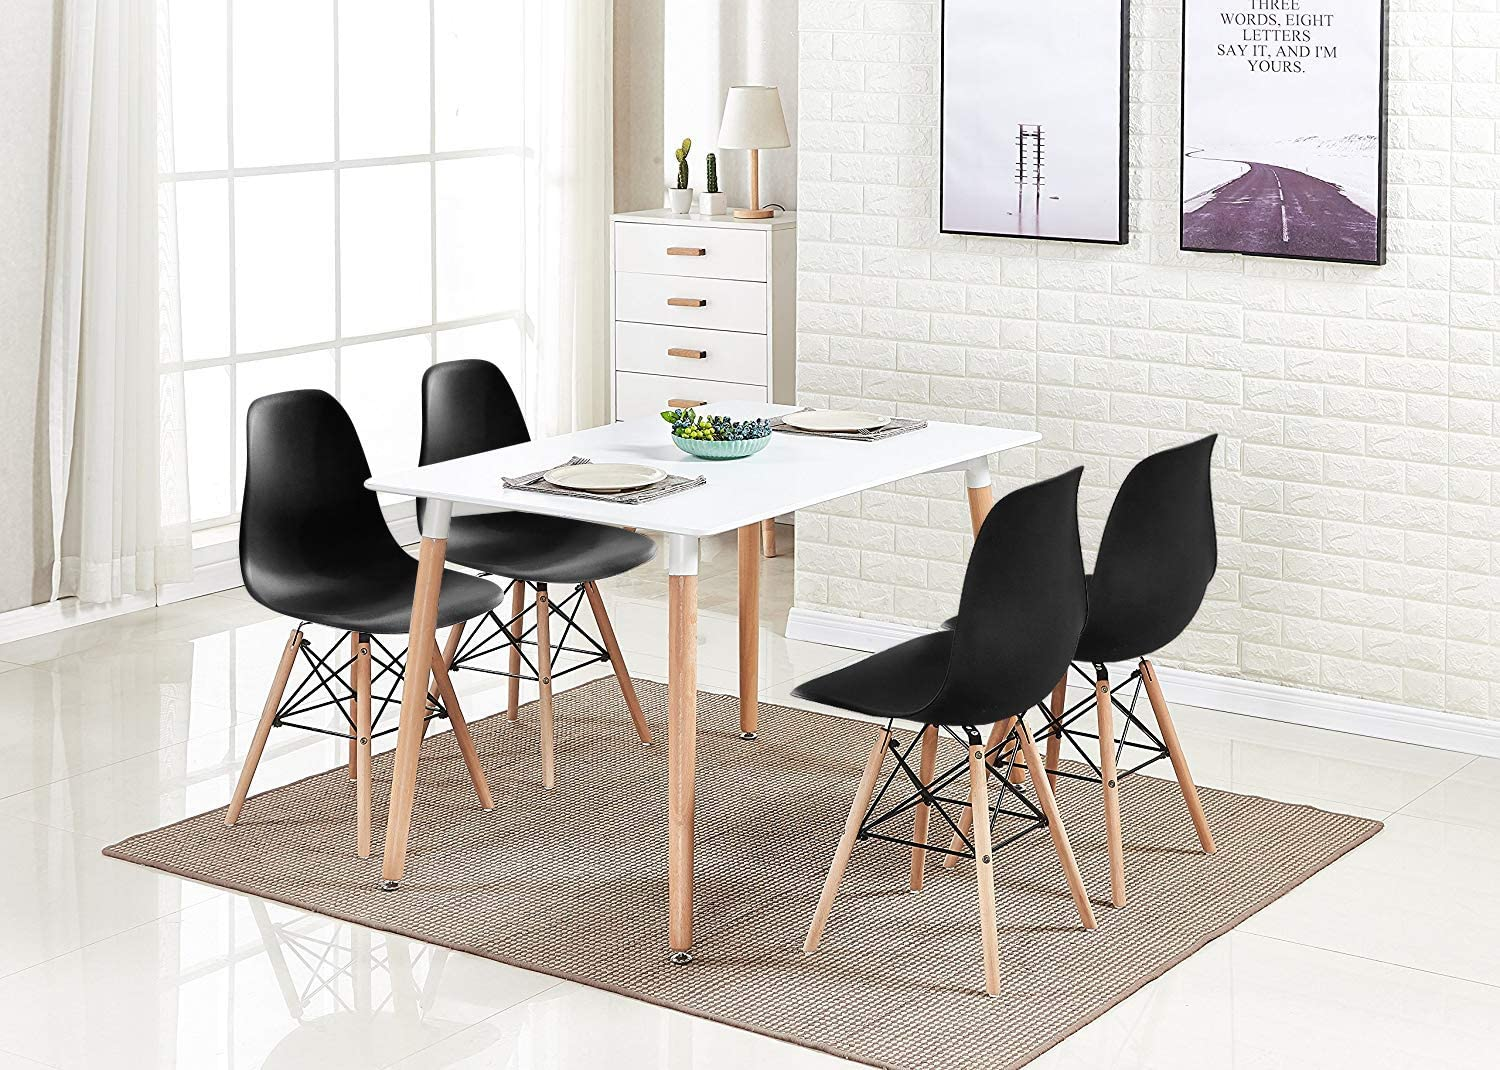 Amazon Com Homesailing Black Dining Chairs And Wood Table Set Of 4 5 Pieces Kitchenblack 4 Retro Eiffel Plastic Chairs White Wooden Dining Room Table Restaurant Office Tea Room Home Furniture